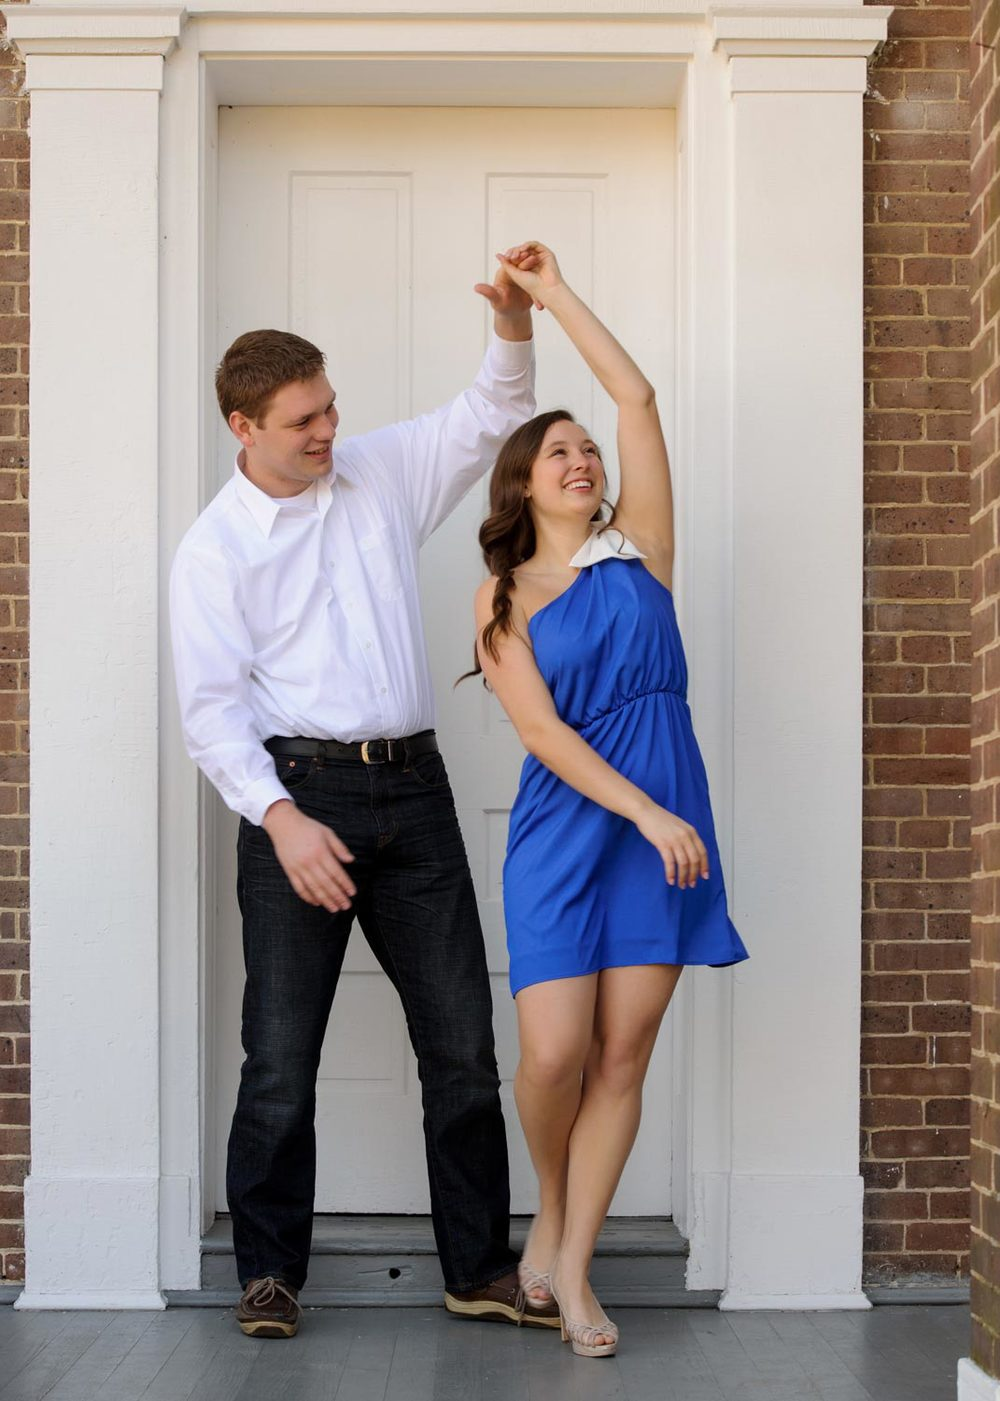 engagement_photography_lexington_ky06.jpg